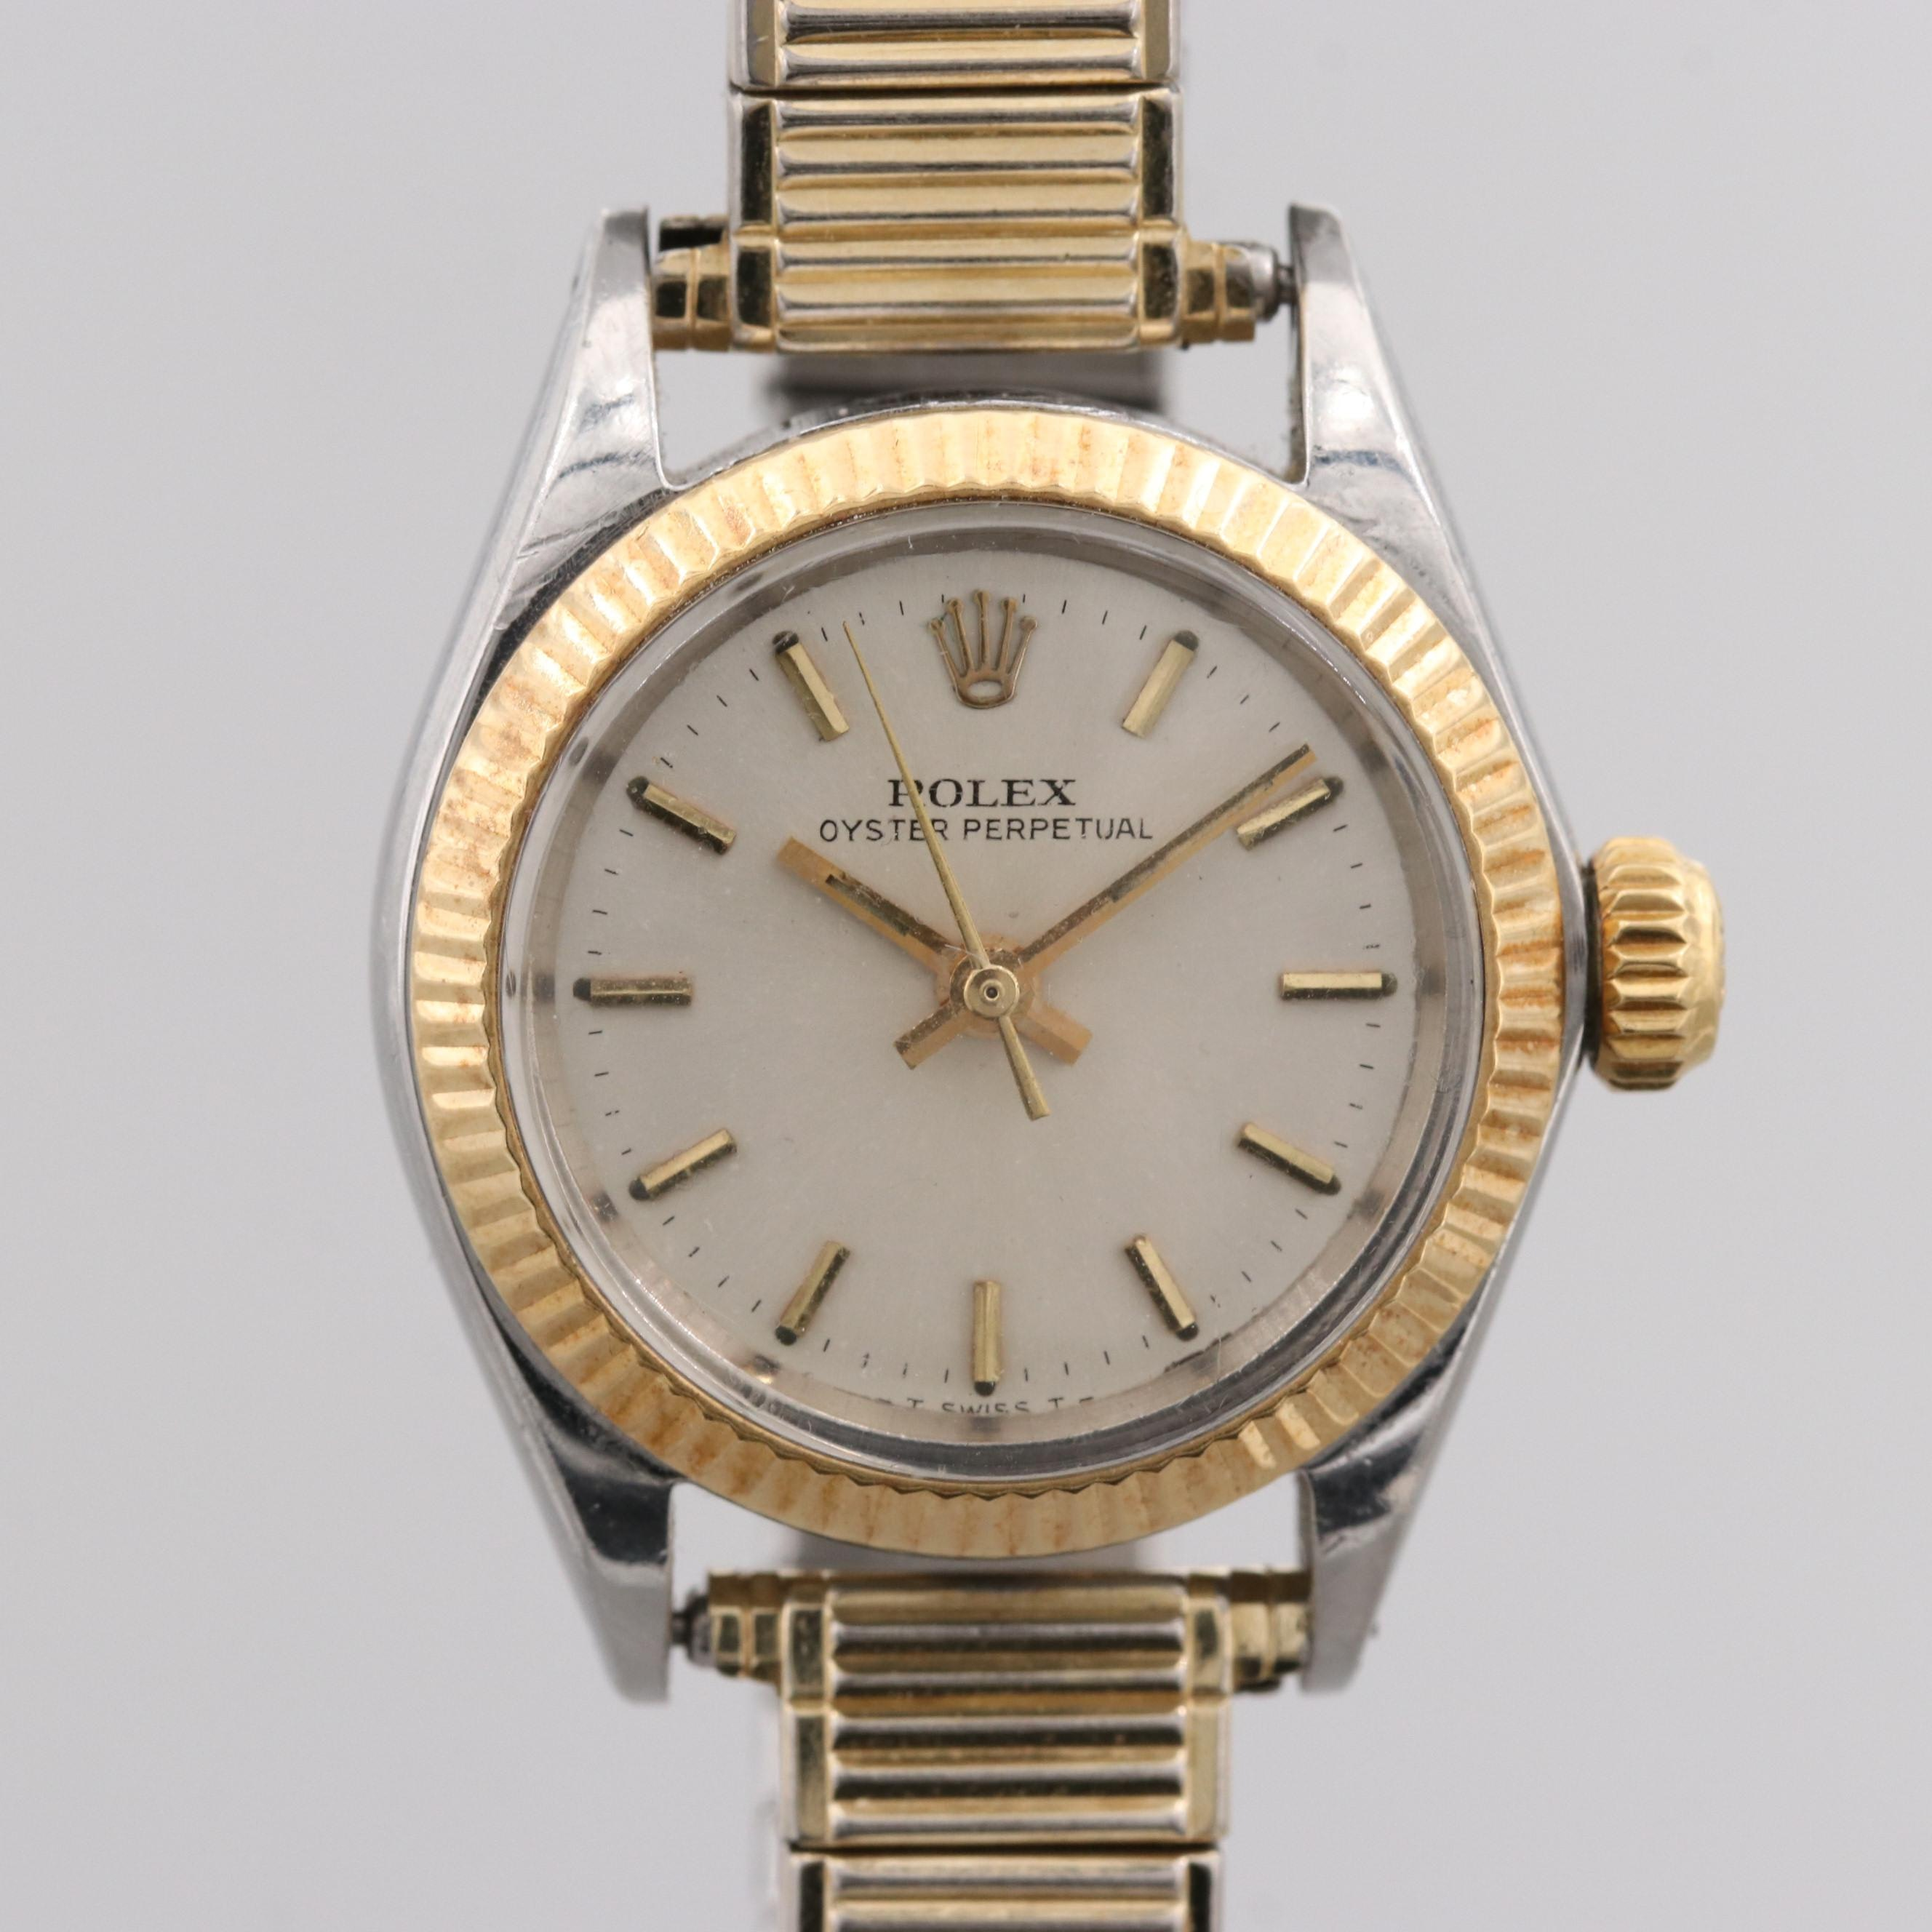 Rolex Oyster Perpetual Stainless Steel and 18K Yellow Gold Wristwatch, 1967